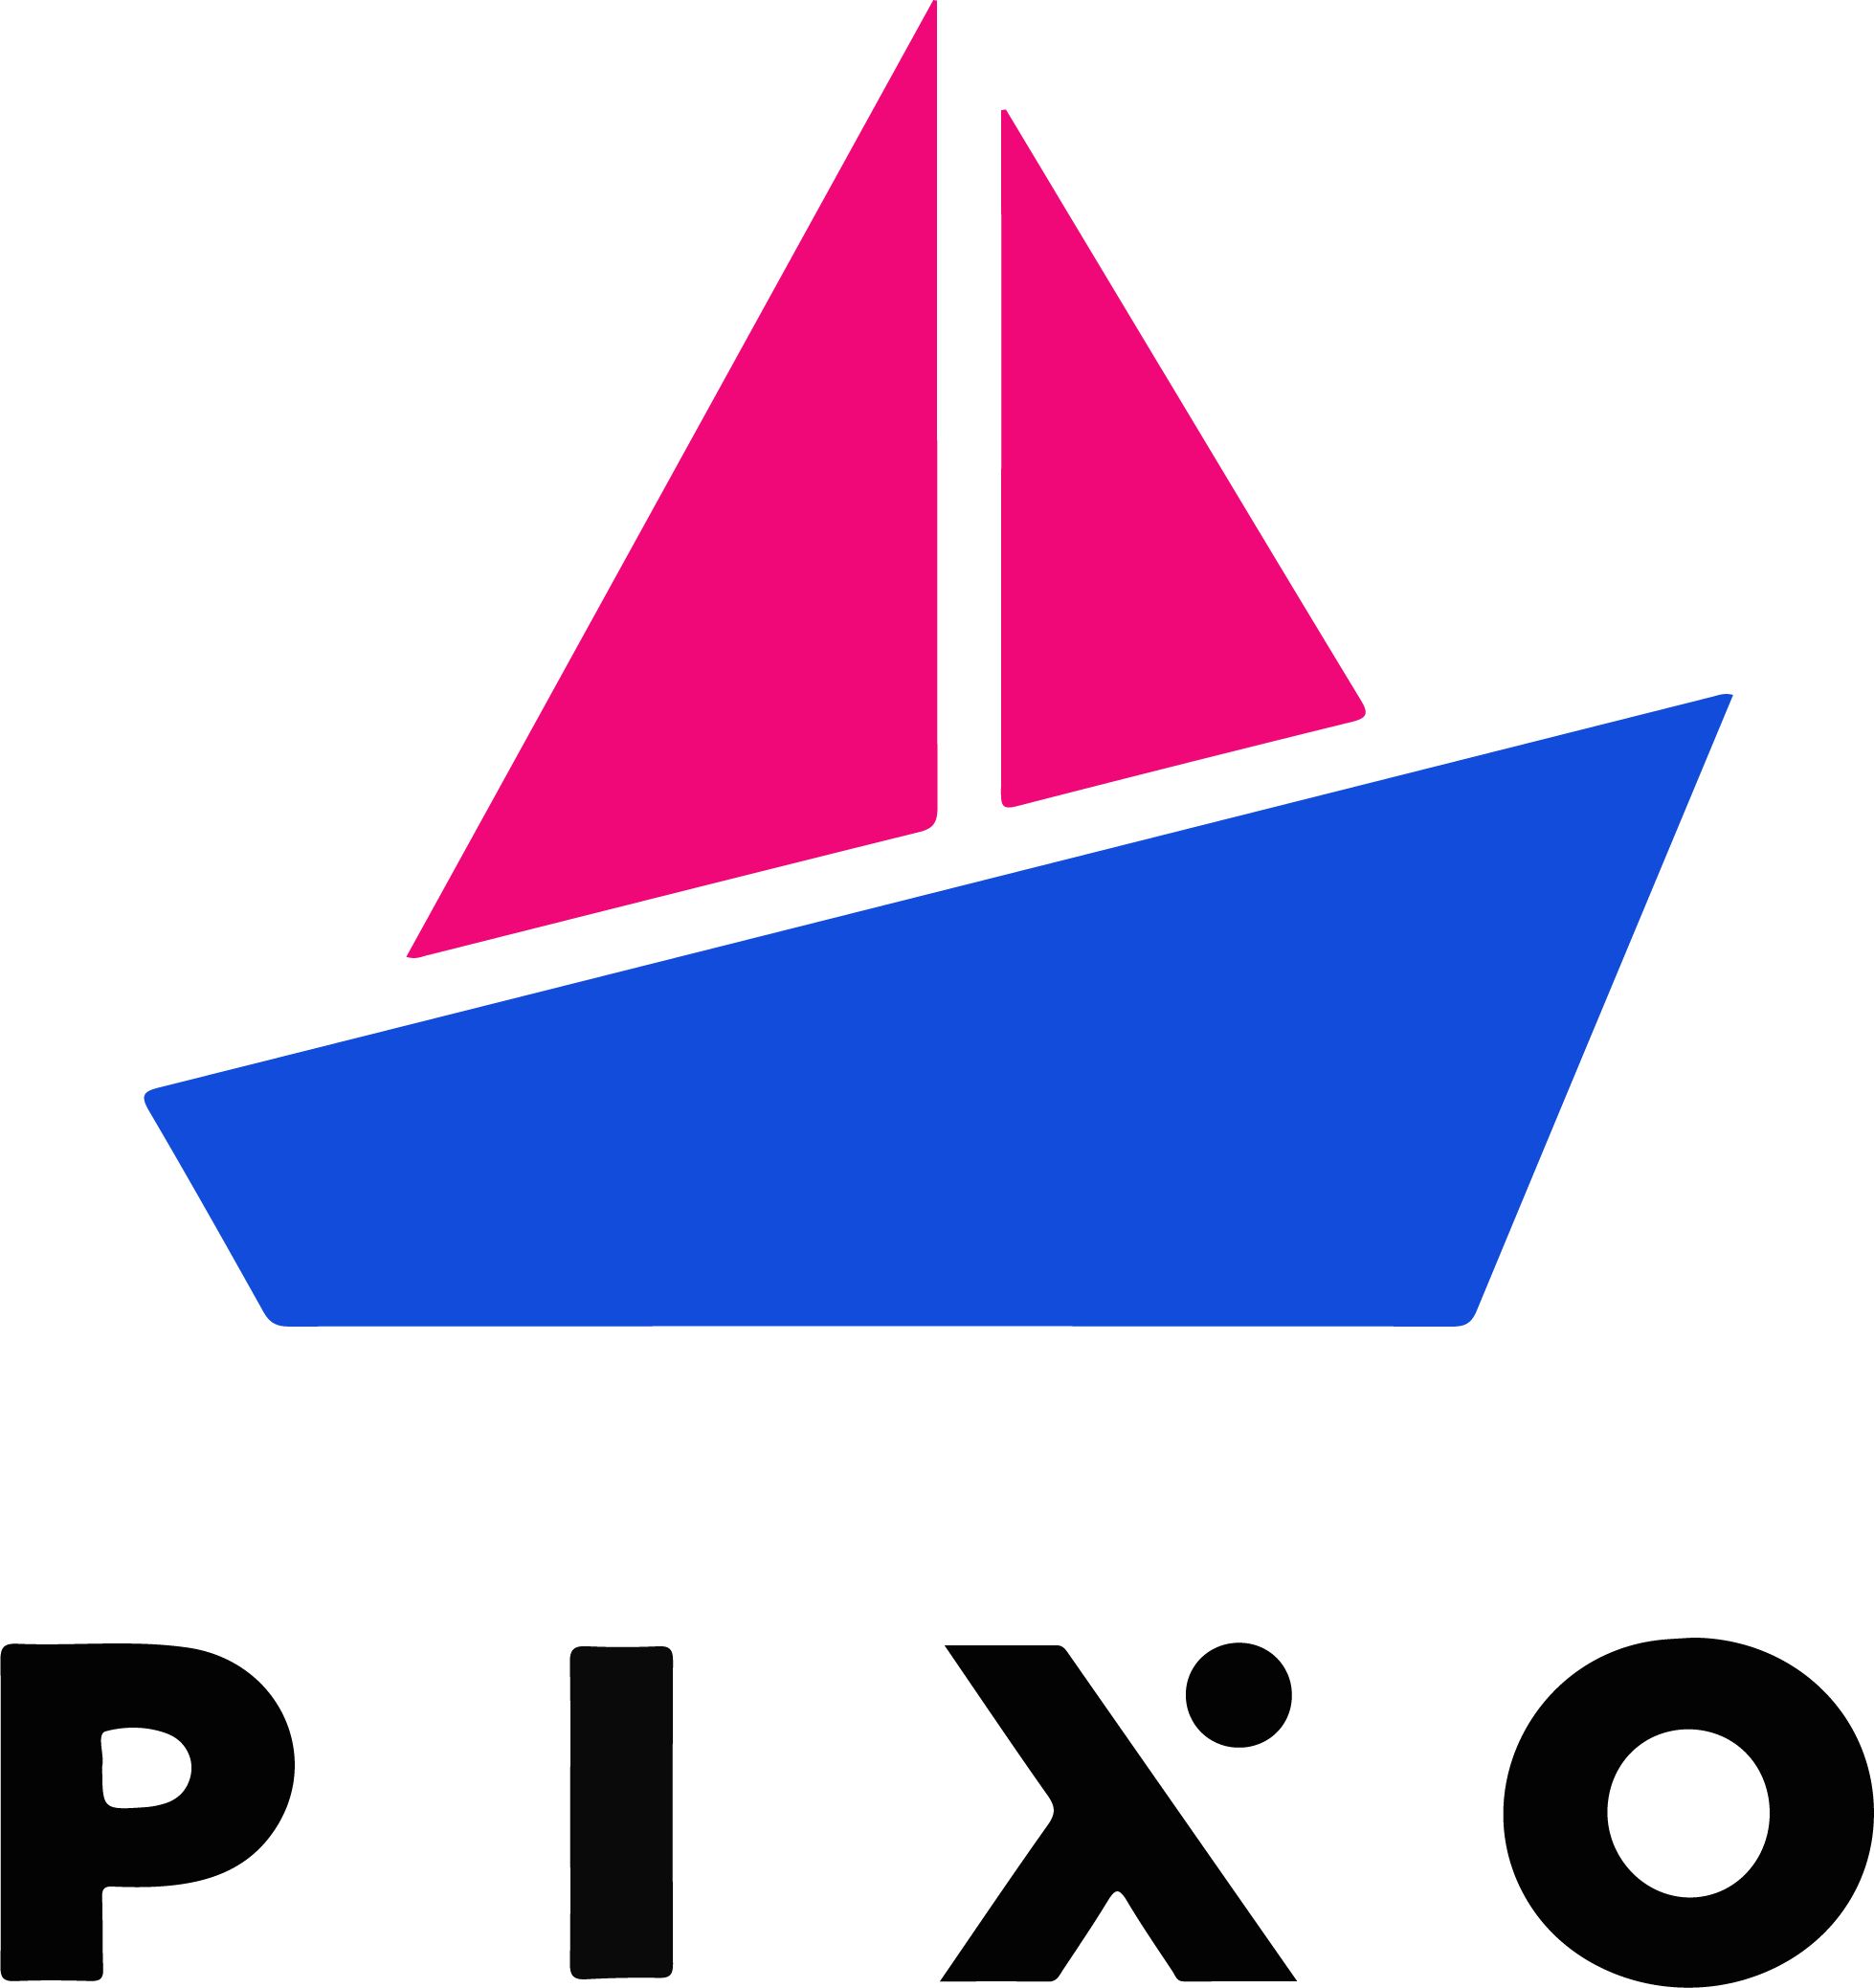 Pink and blue Pixo logo